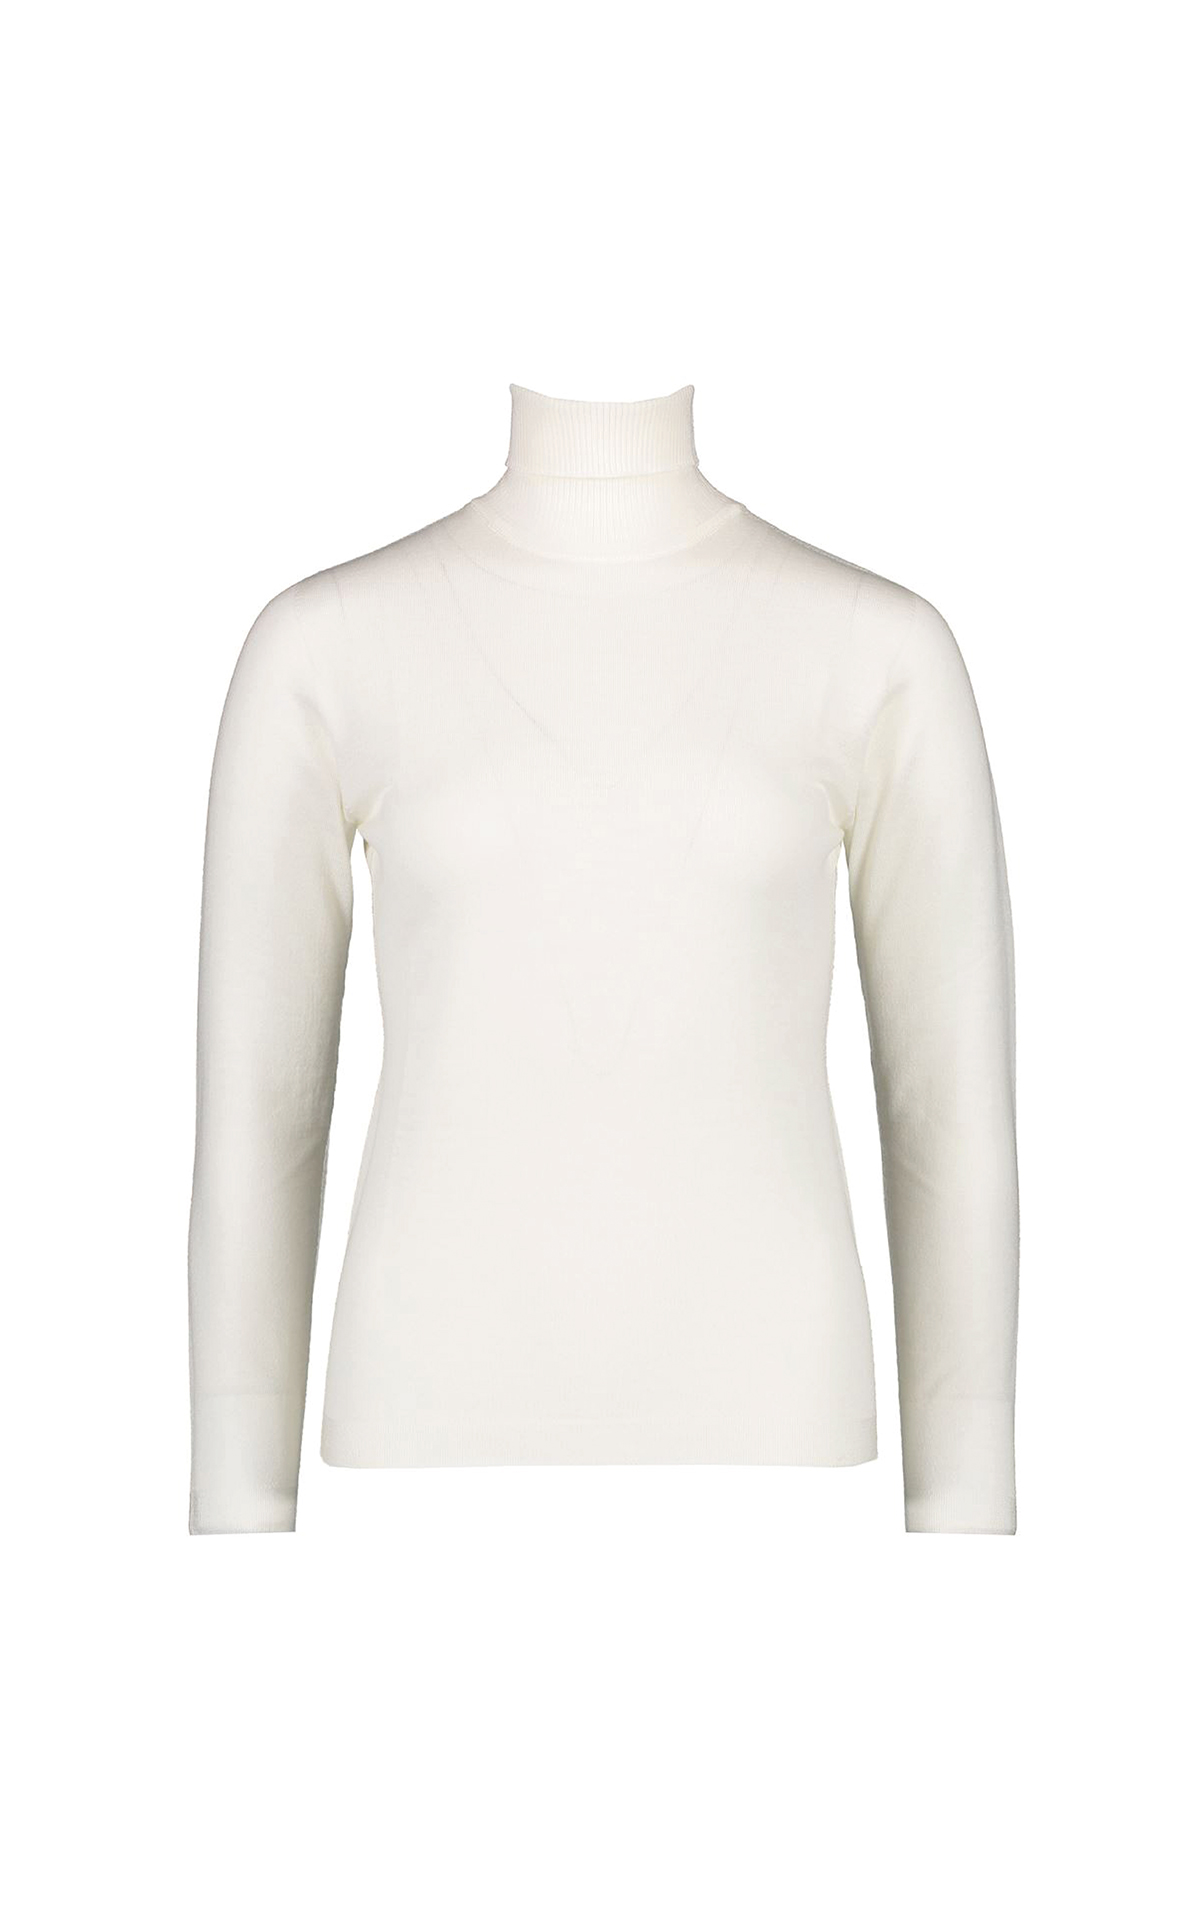 White turtleneck sweater Escada